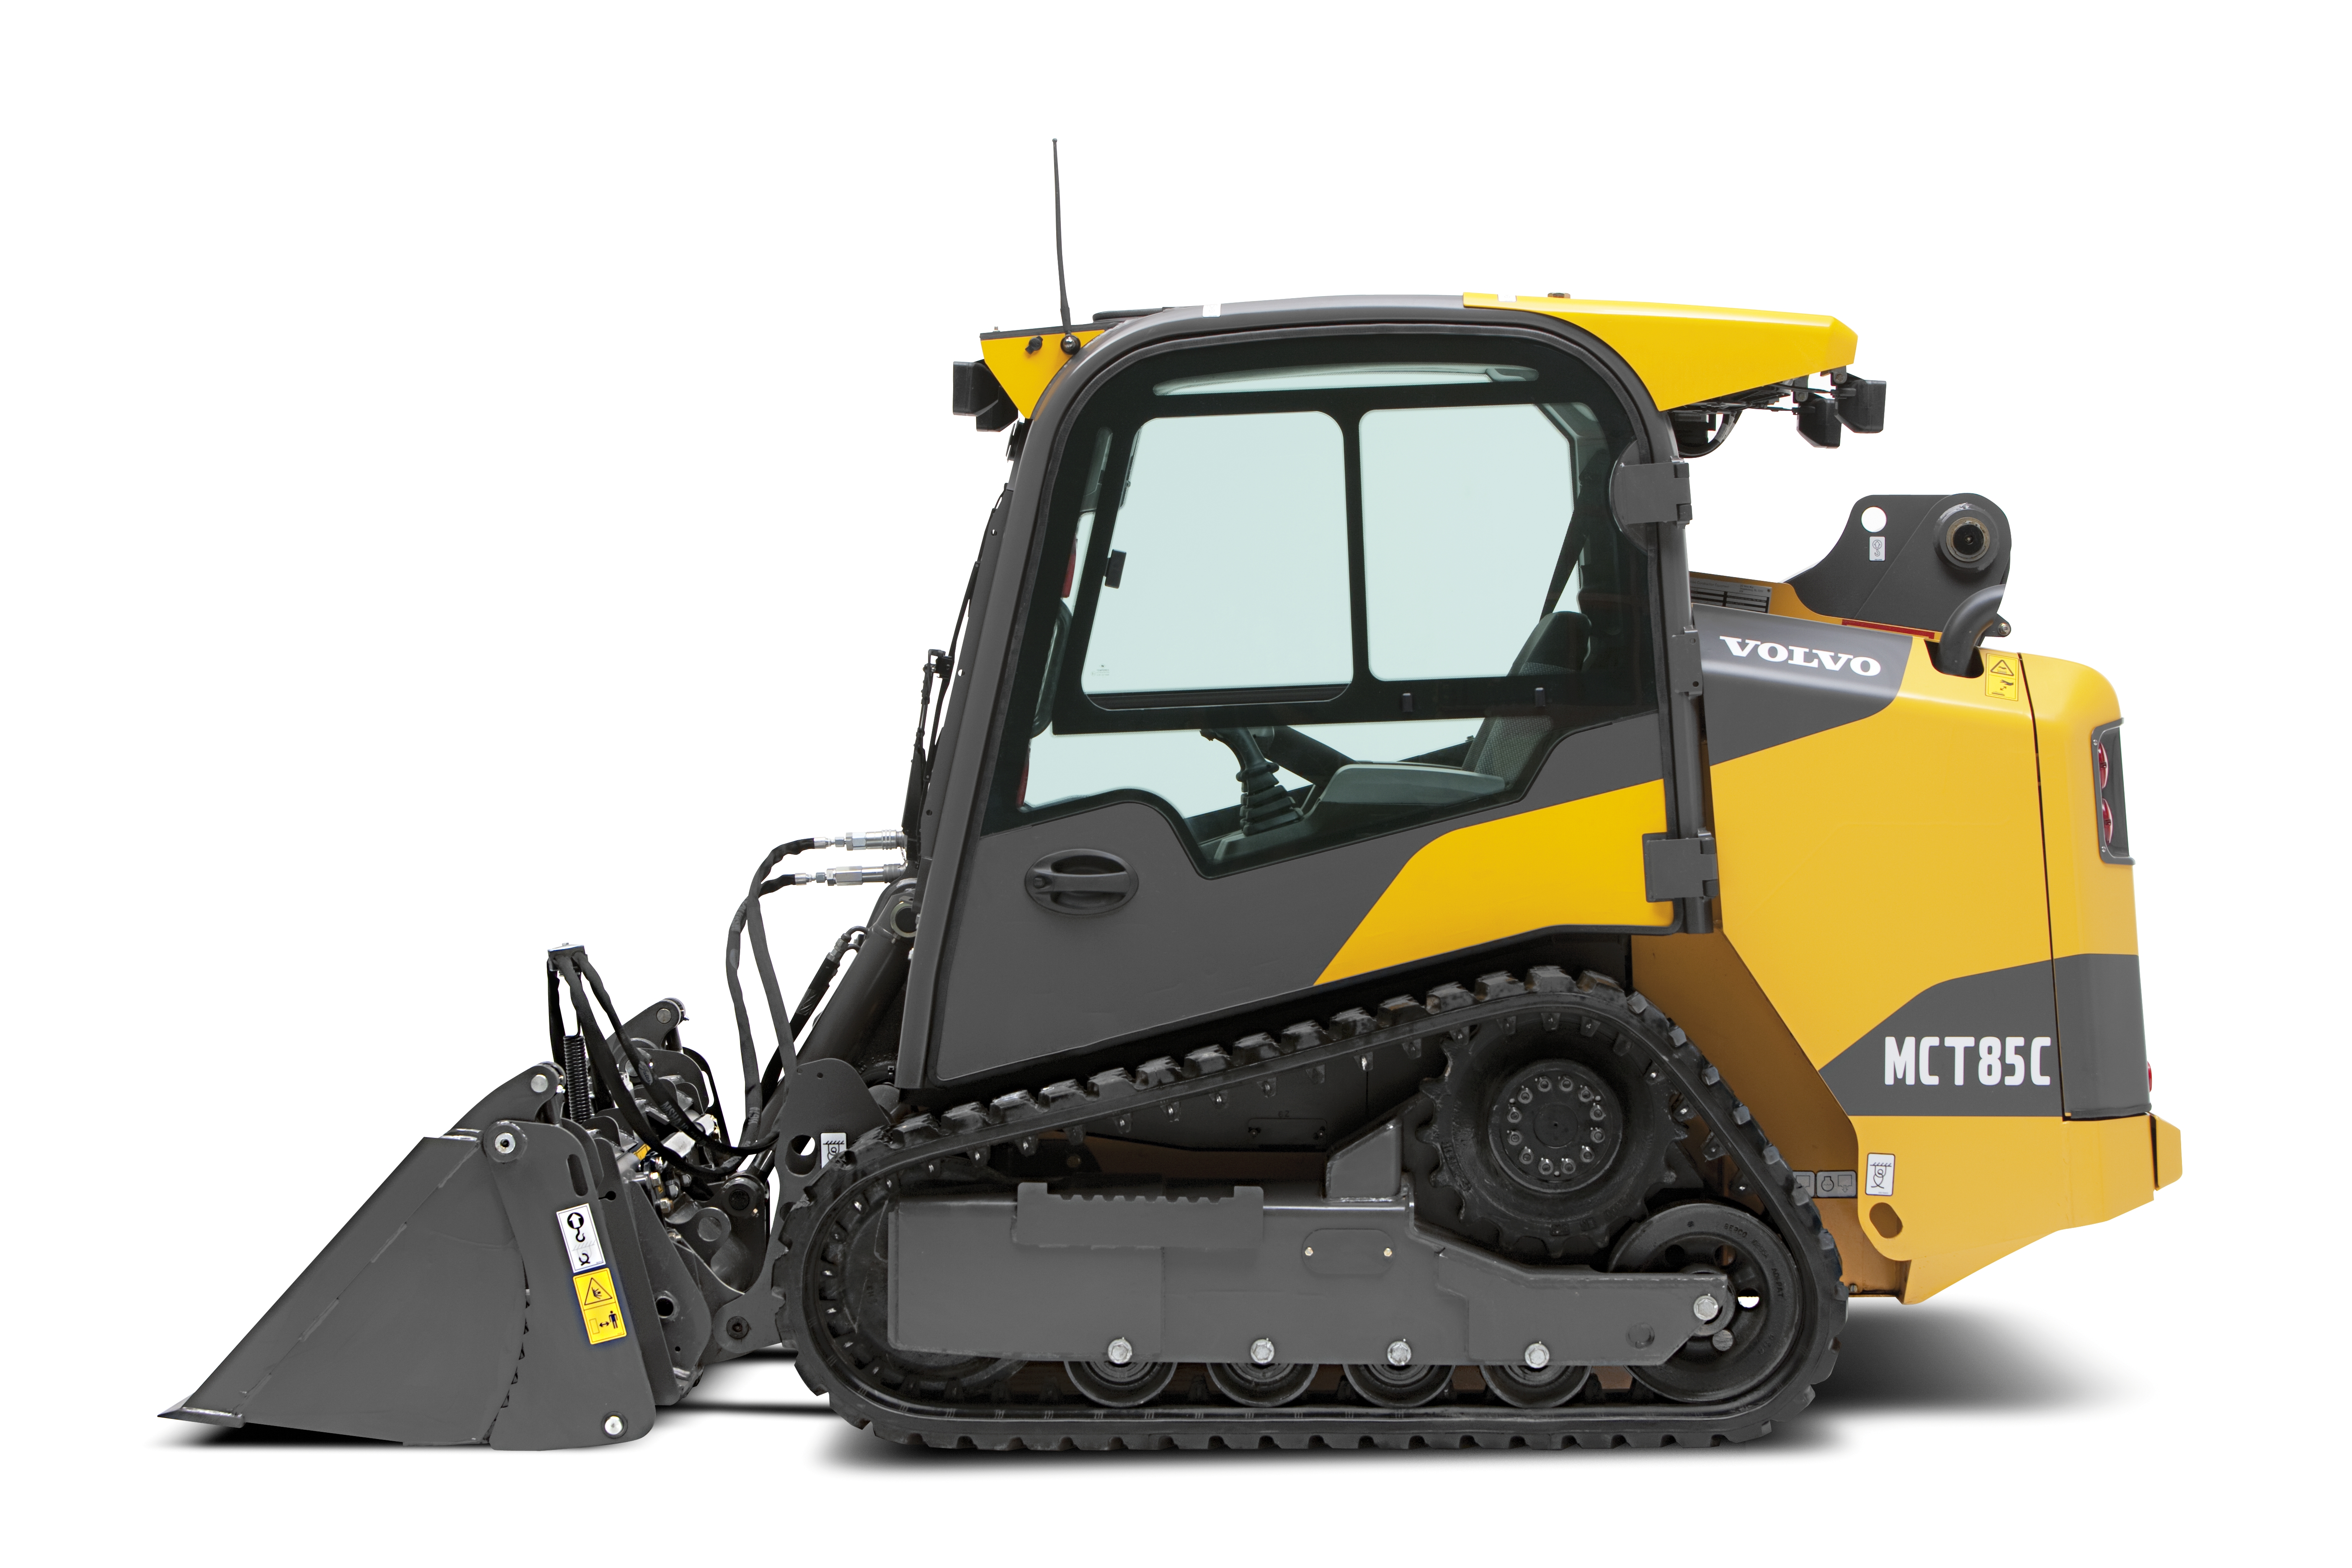 Volvo Skid Steer >> Volvo Mct 85 C Specifications Technical Data 2013 2015 Lectura